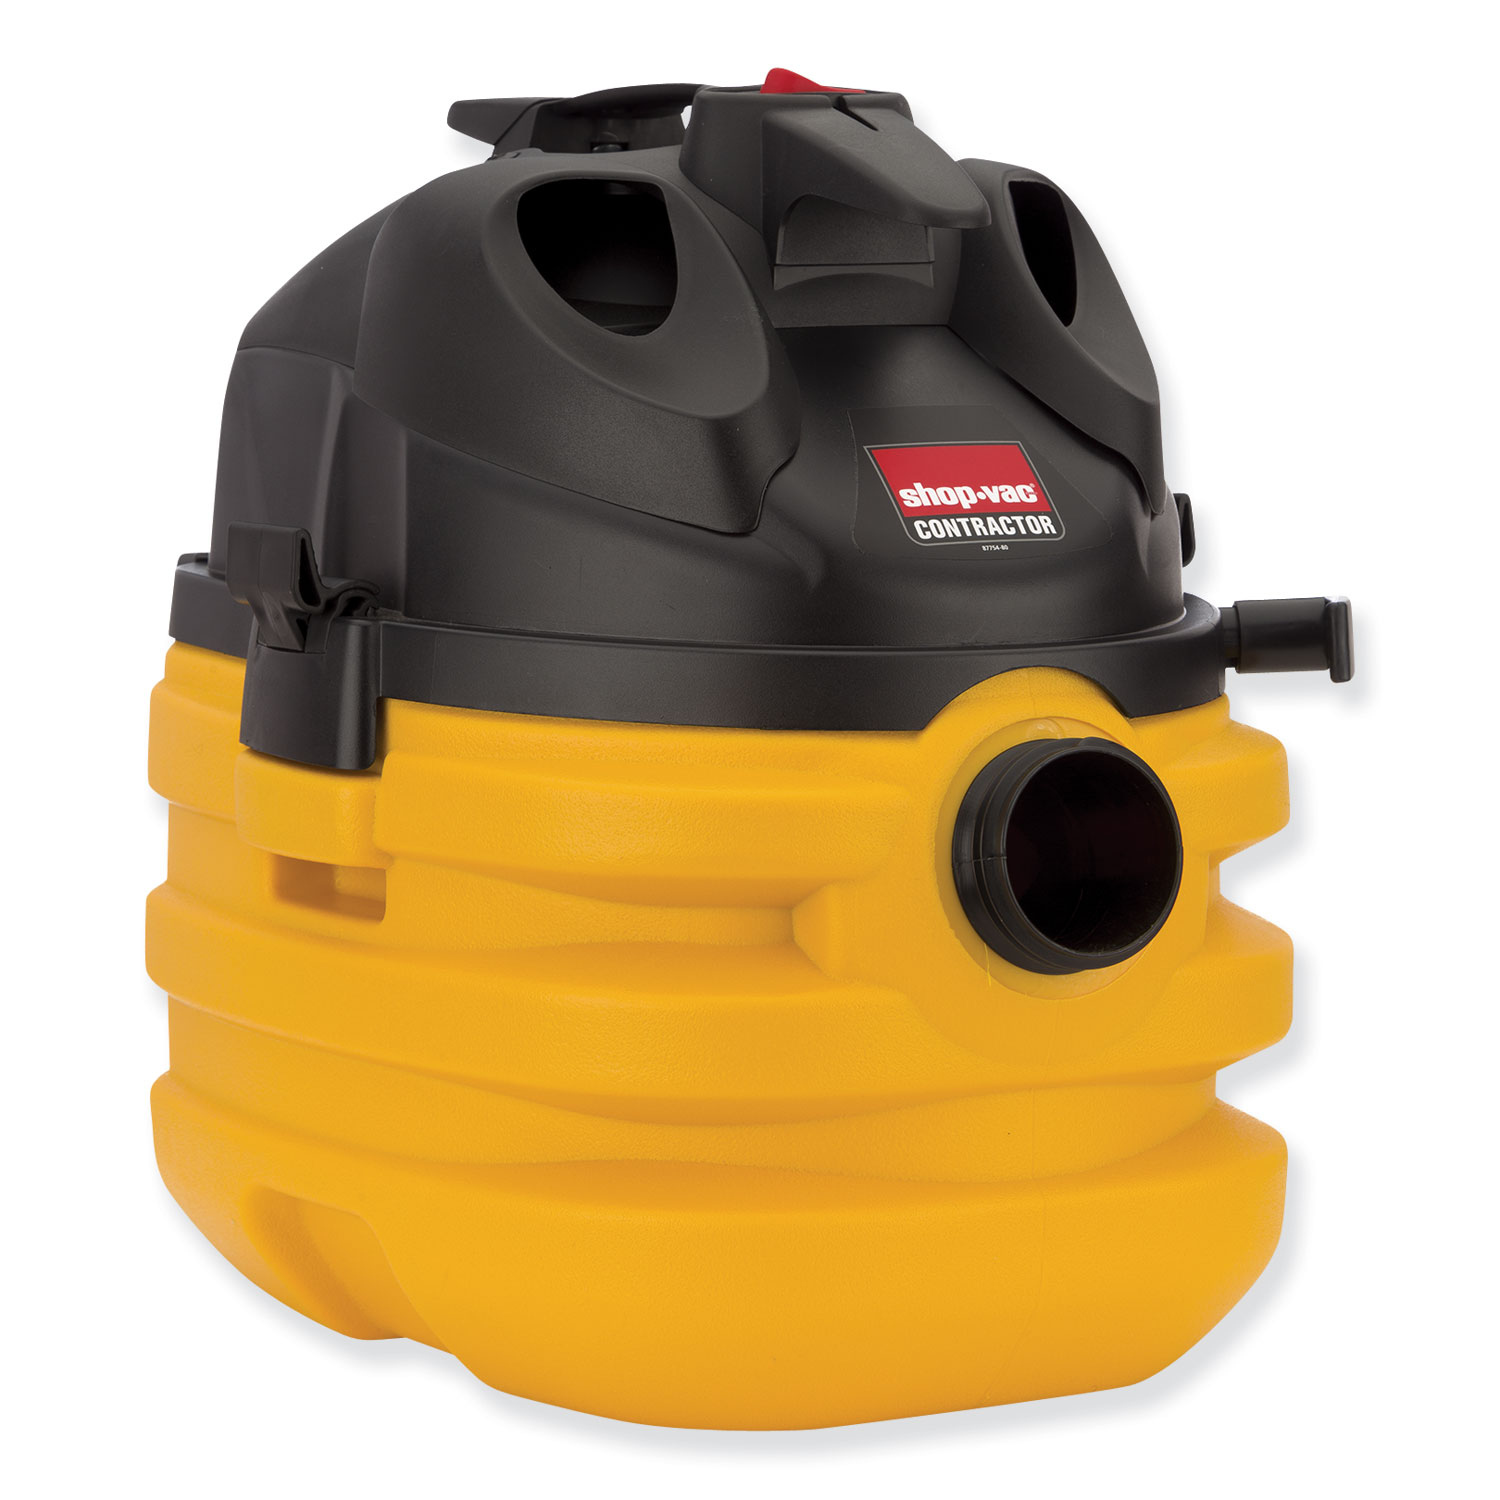 5 Gallon 6 Peak HP Portable Contractor Wet/Dry Vacuum